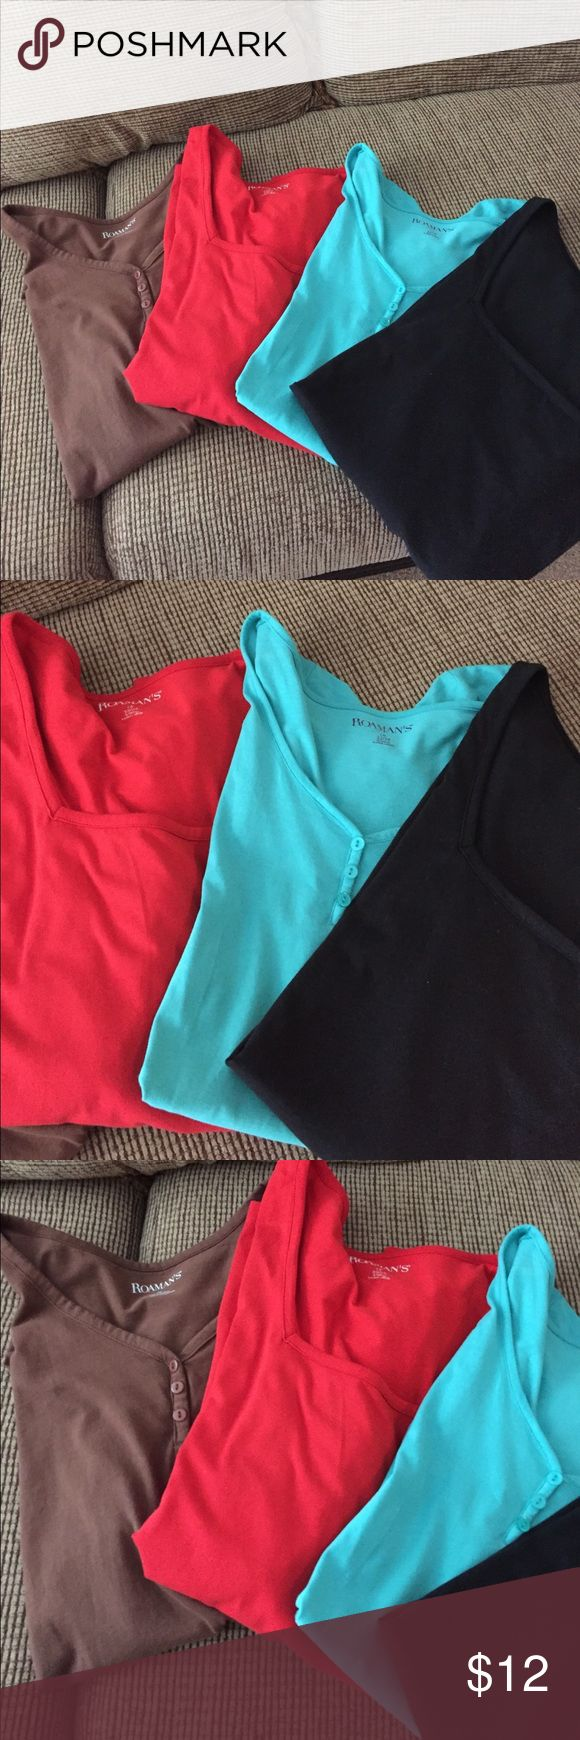 Woman's plus size assort. Short sleeve tops All 5 for $13. Assorted woman's tee shirts in excellent condition. Some have square neckline, som are 3 button Henley. Turquoise, black, red, brown, royal and navy. Great colours to go with everything NOW 5 for $12 Roaman's Tops Tees - Short Sleeve